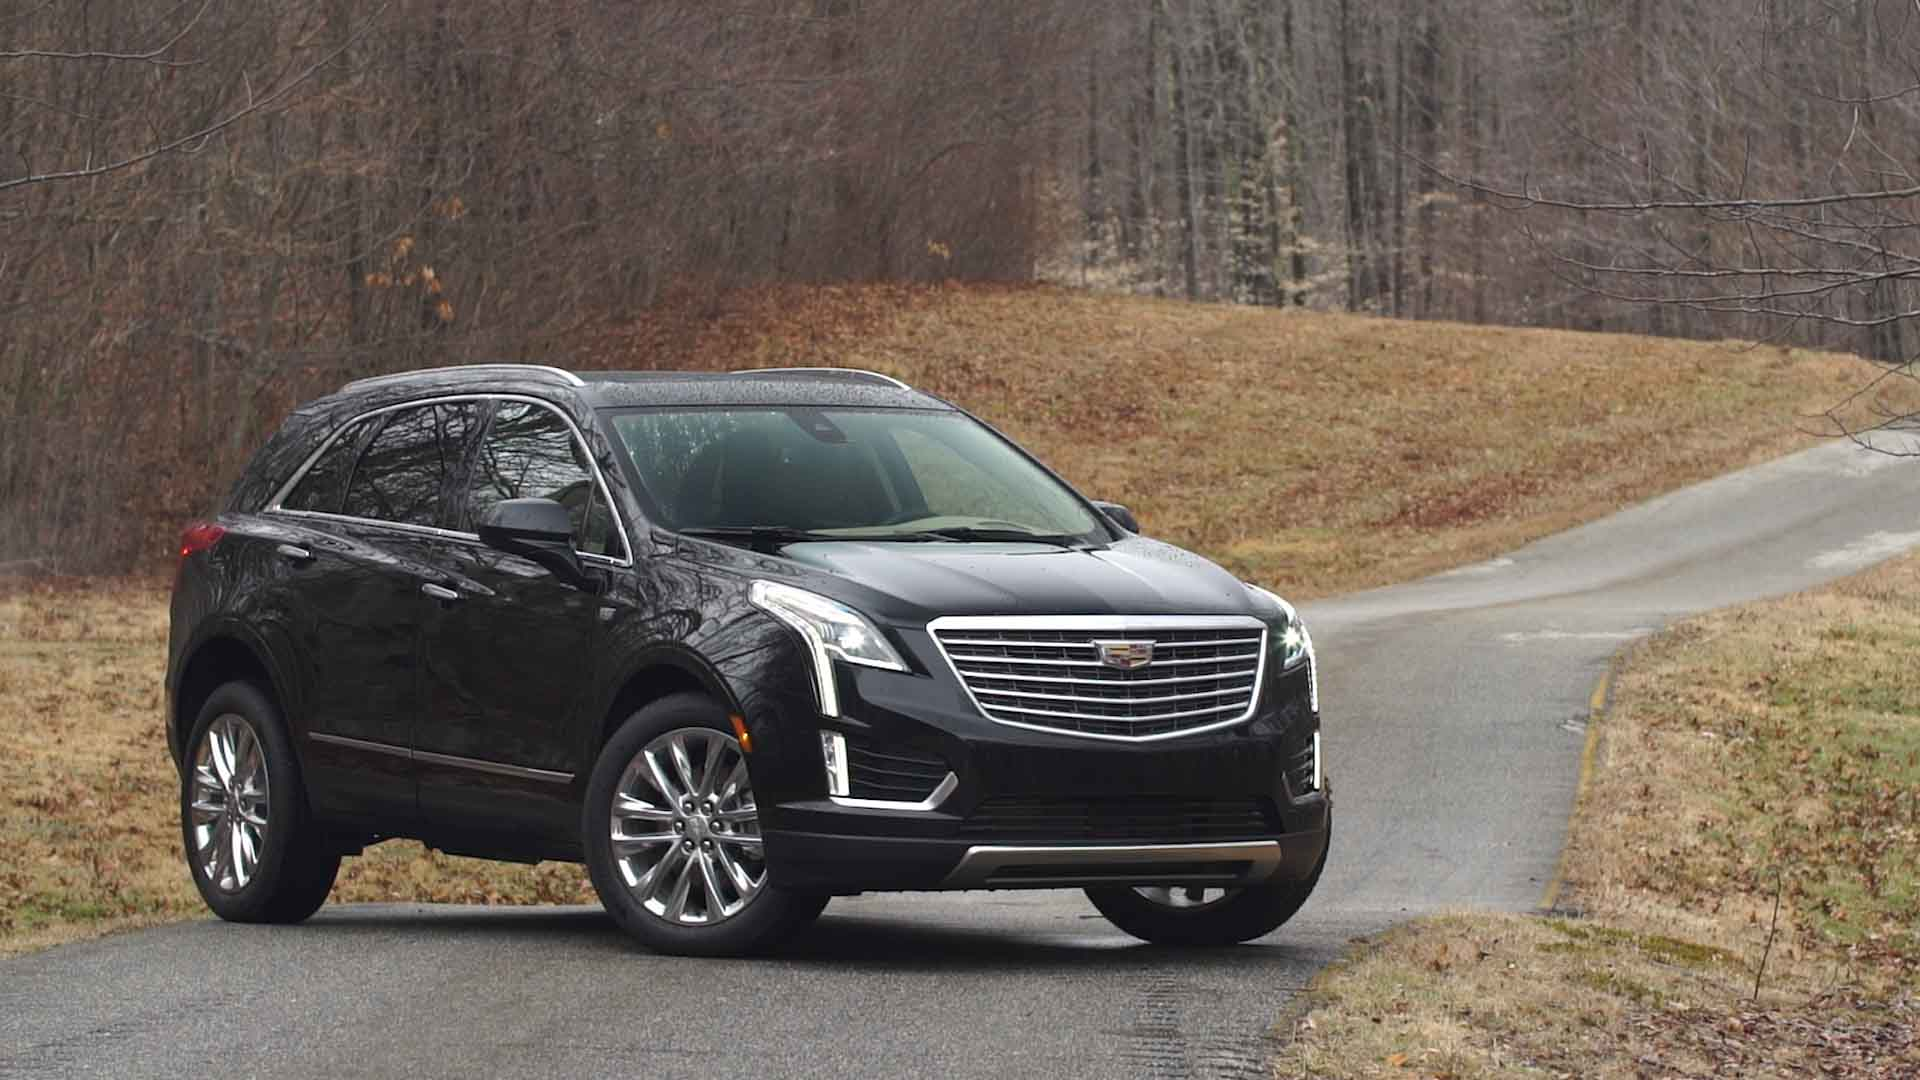 2017 cadillac xt5 ready for luxury suv fight consumer reports. Black Bedroom Furniture Sets. Home Design Ideas